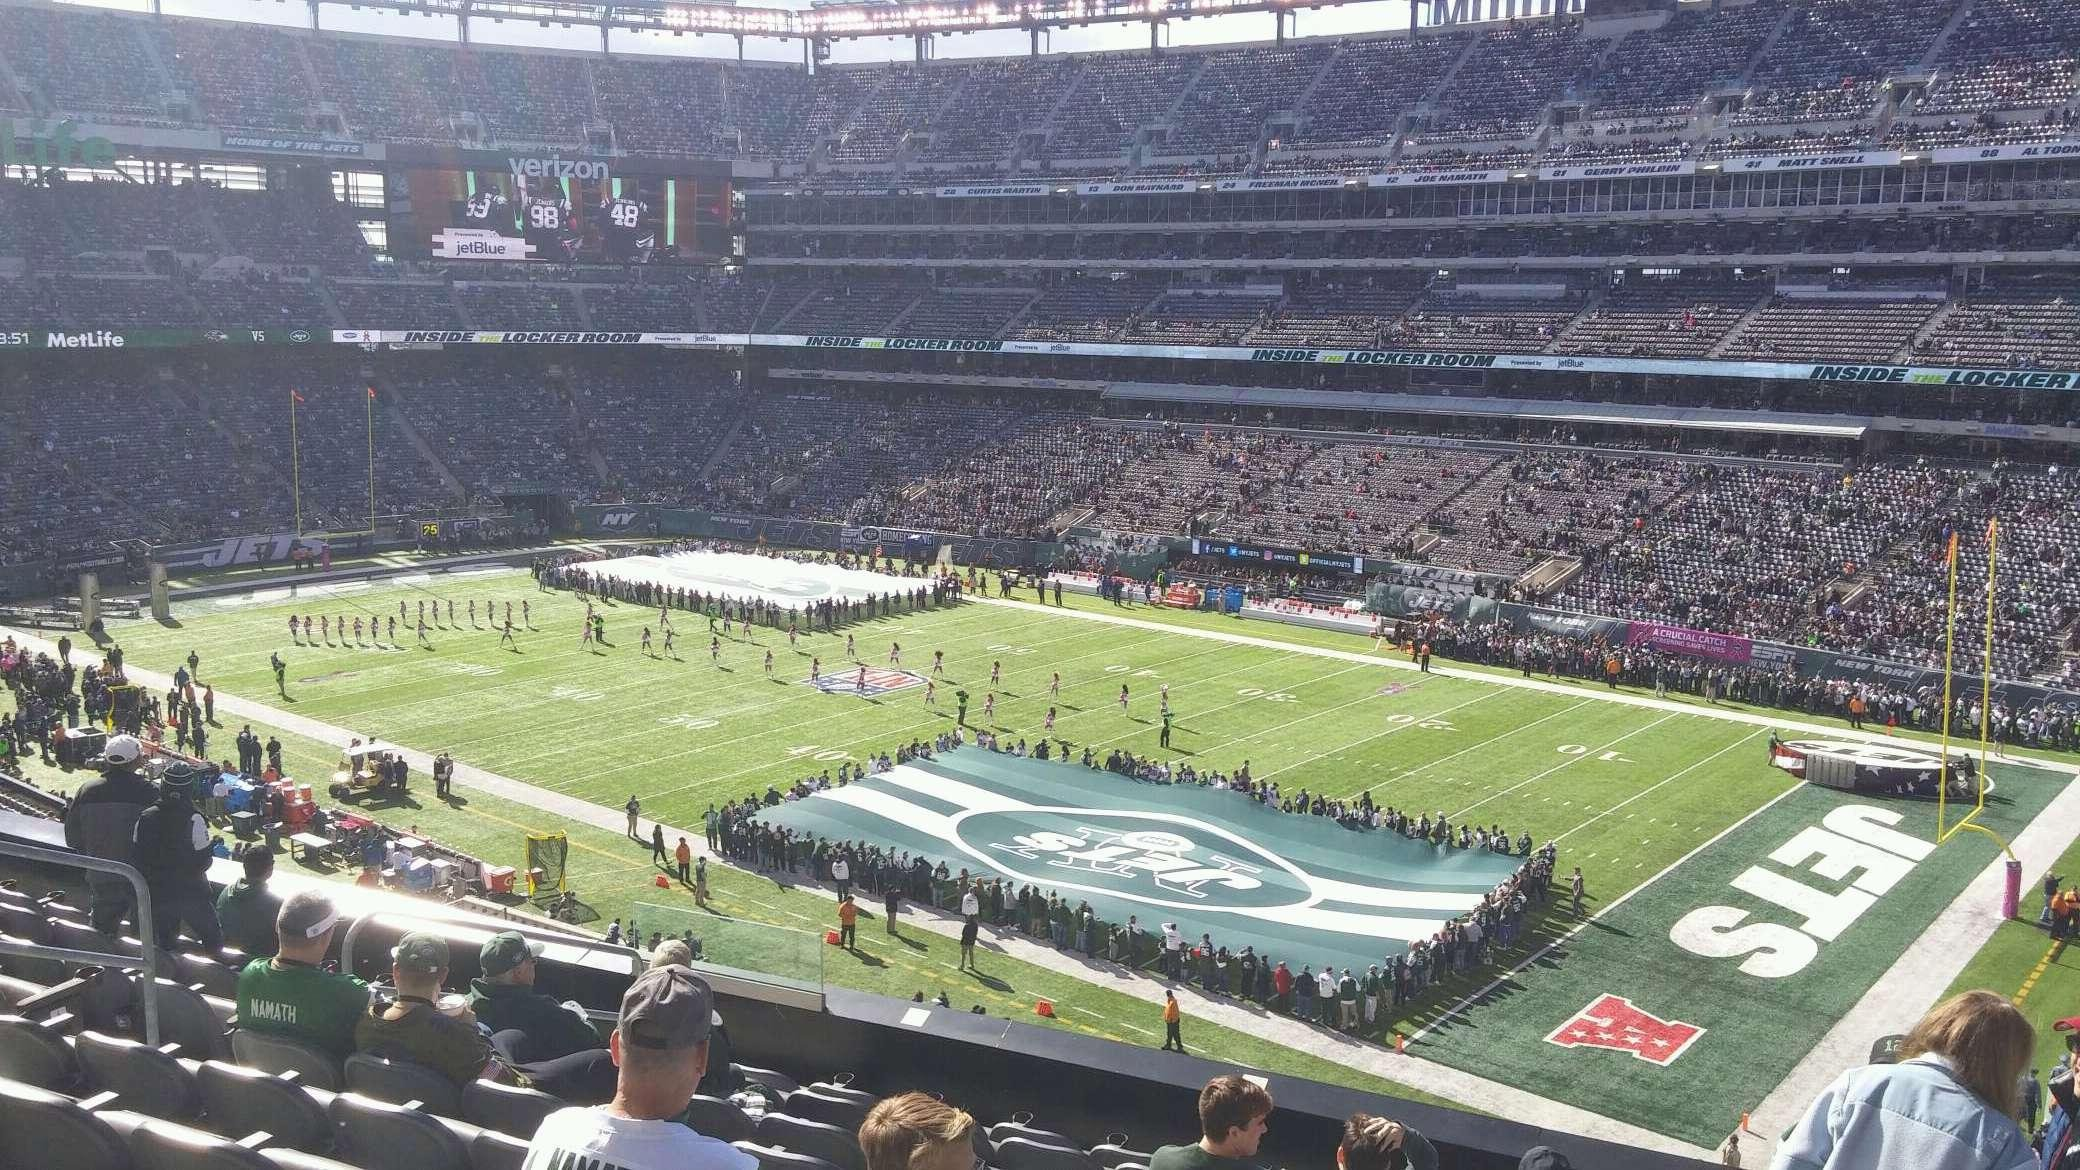 MetLife Stadium Section 208 Row 9 Seat 13